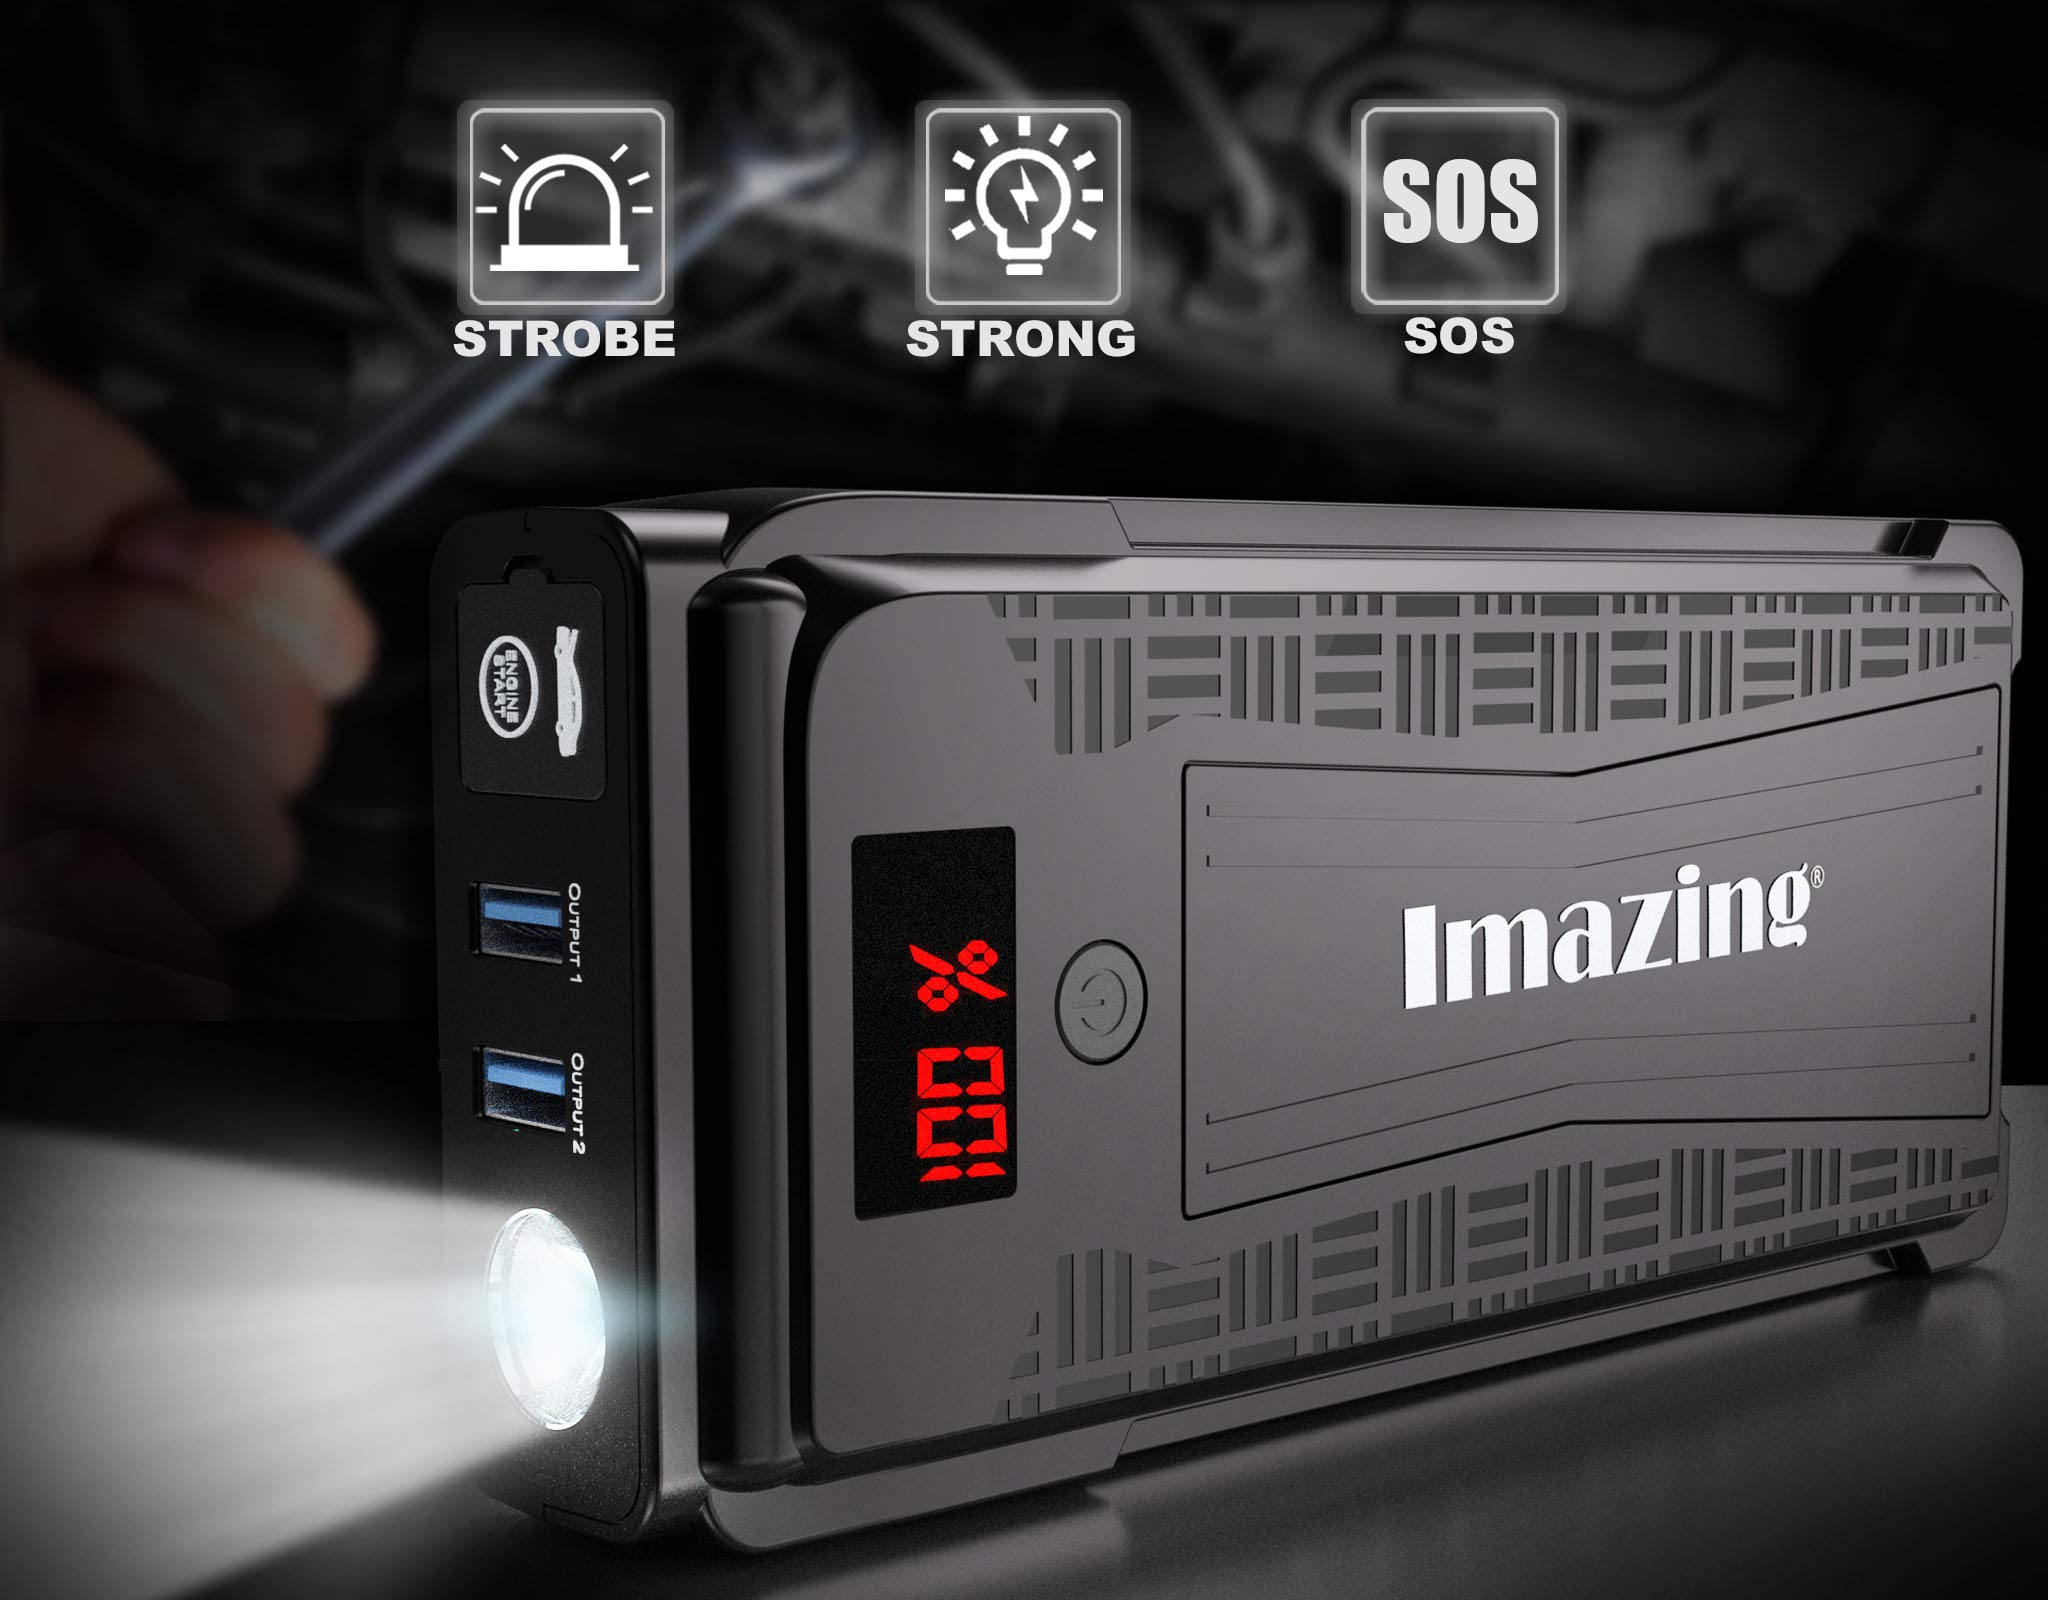 Imazing Portable Car Jump Starter - 2500A Peak 20000mAH (Up to 8L Gas or 8L Diesel Engine) 12V Auto Battery Booster Portable Power Pack with LCD Display Jumper Cables, QC 3.0 and LED Light by Imazing (Image #3)